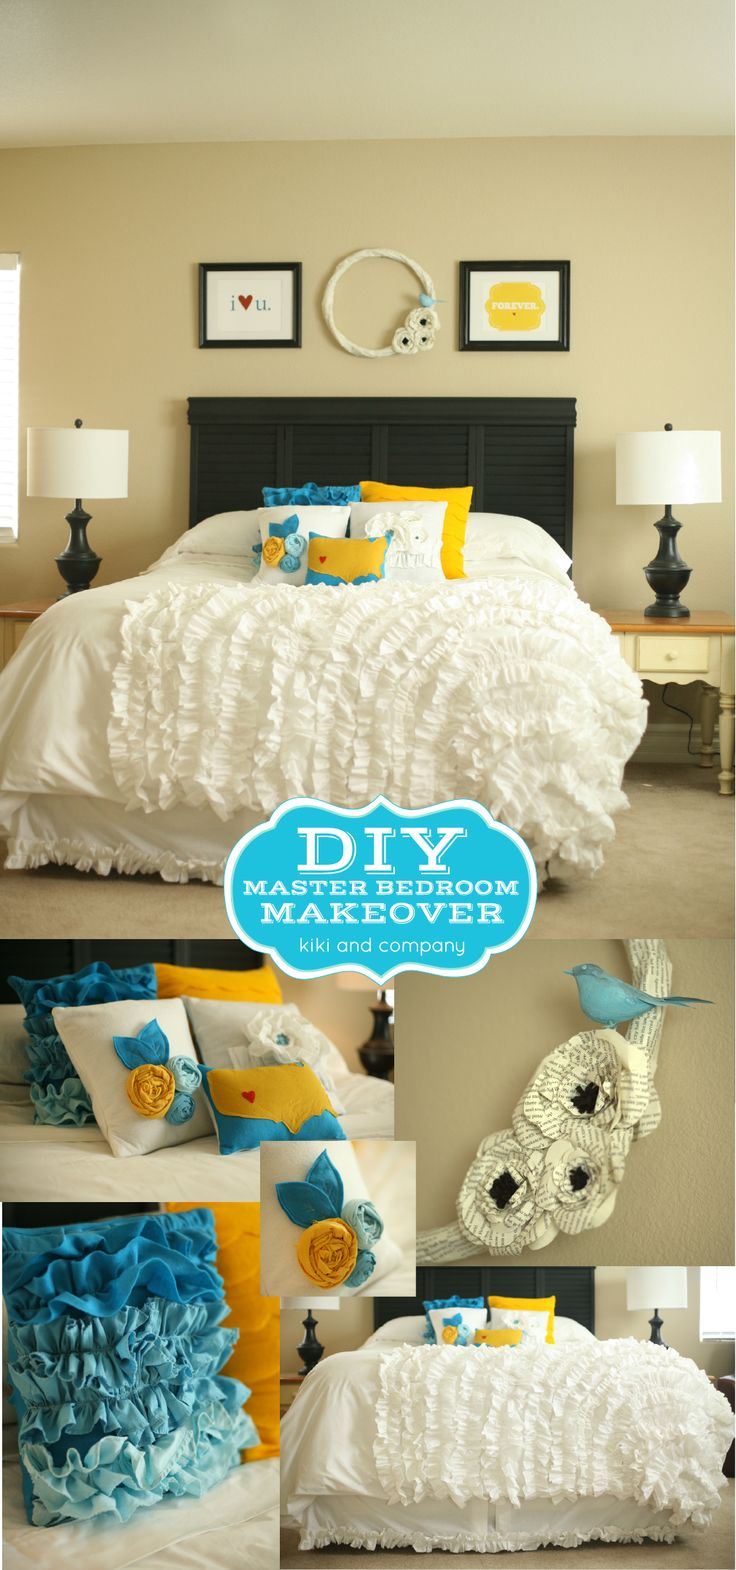 1000 images about bedroom redo ideas on pinterest diy headboards soccer and guest rooms Diy master bedroom makeover